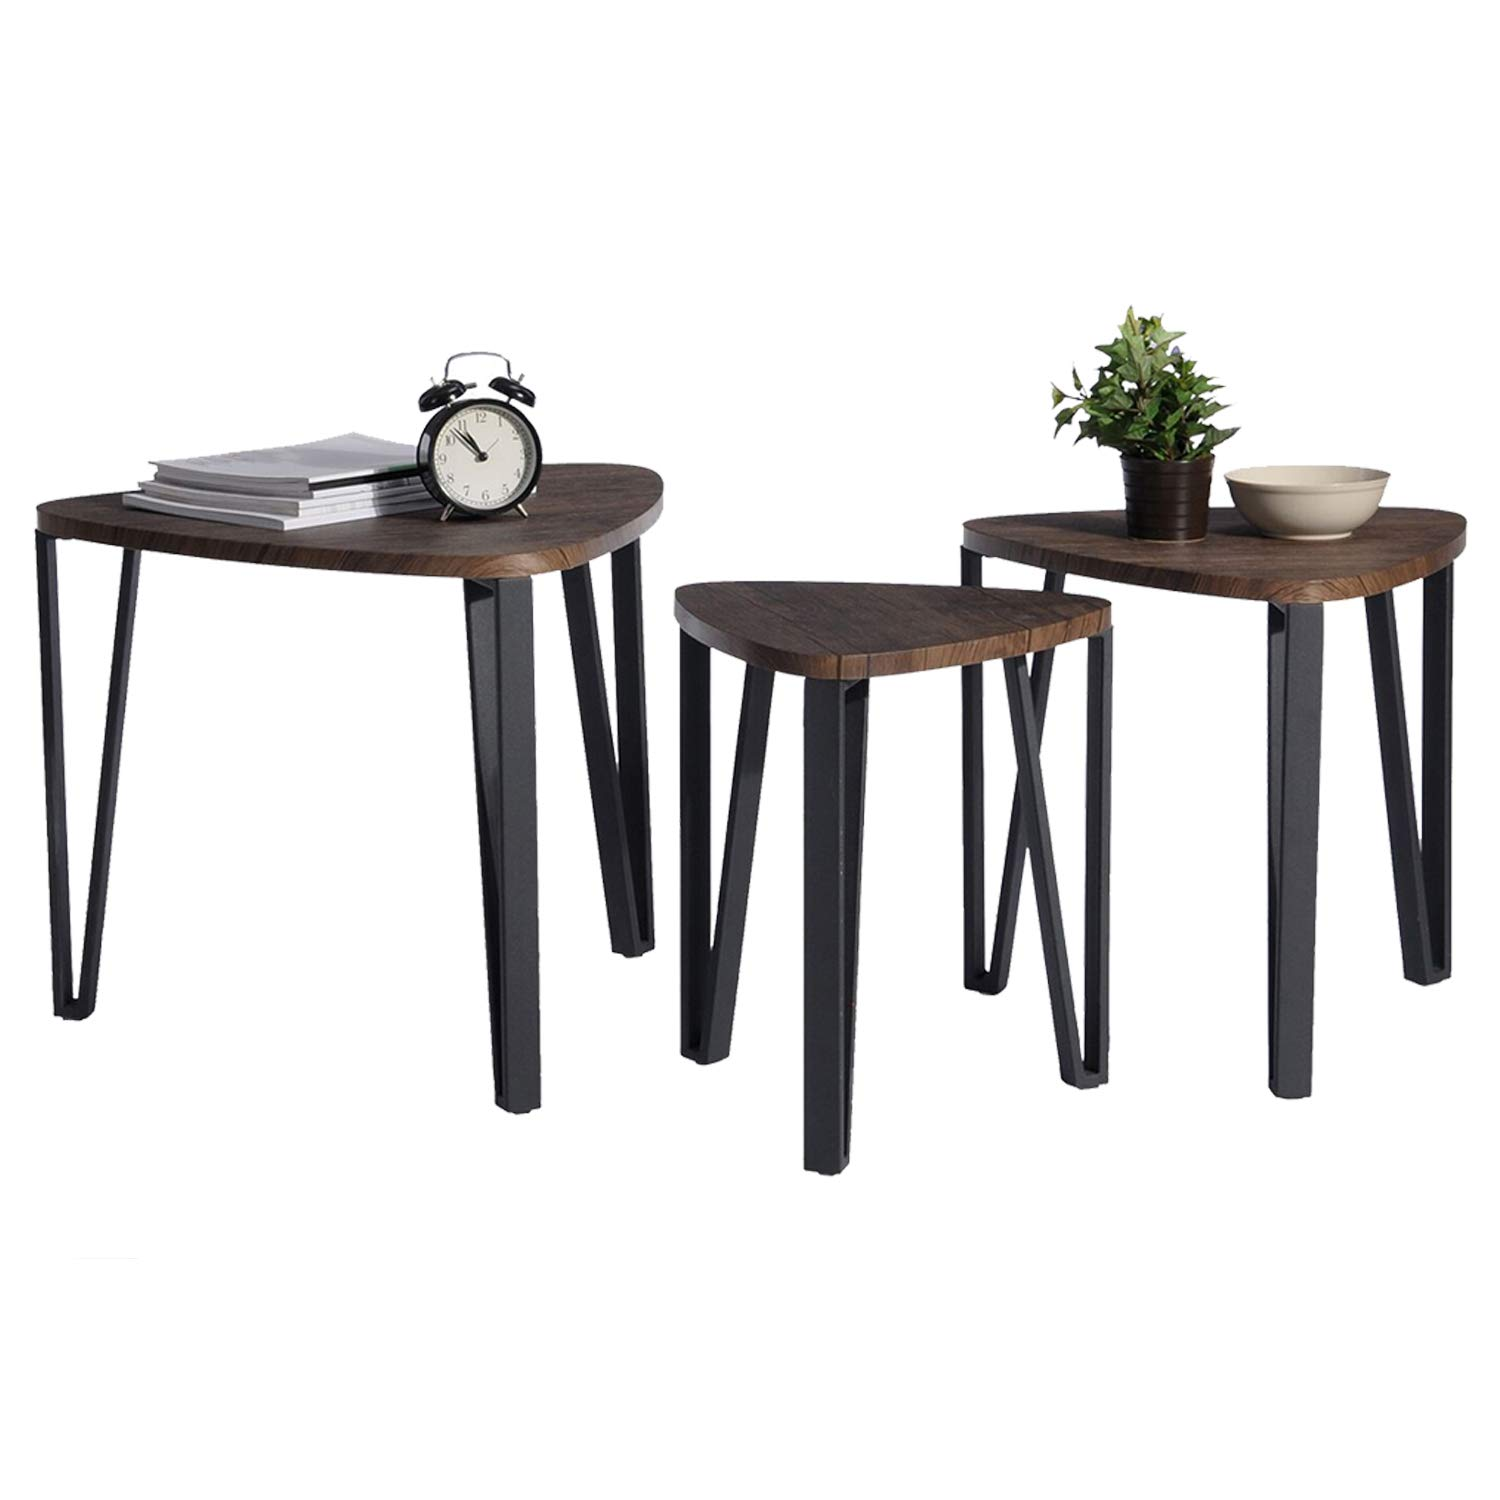 Coavas vintage nesting coffee table set for living room industrial stacking end side table leisure wood night stand telephone table for home office receving